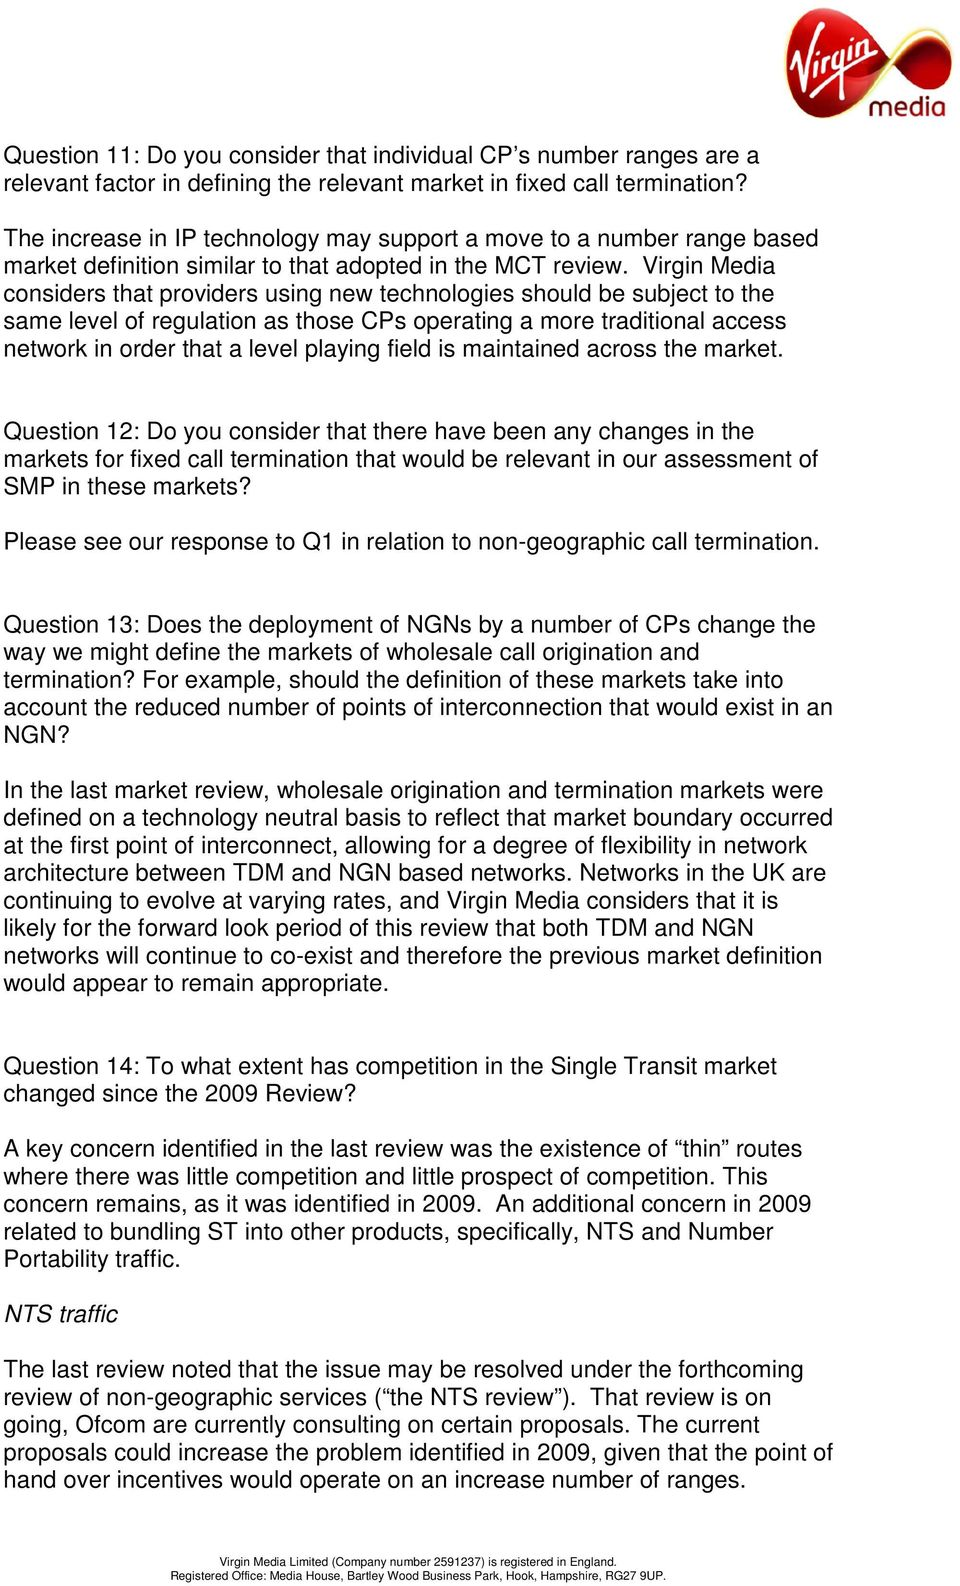 VIRGIN MEDIA S RESPONSE TO OFCOM S FIXED NARROWBAND MARKET REVIEW AND  NETWORK CHARGE CONTOL CALL FOR INPUTS - PDF Free Download